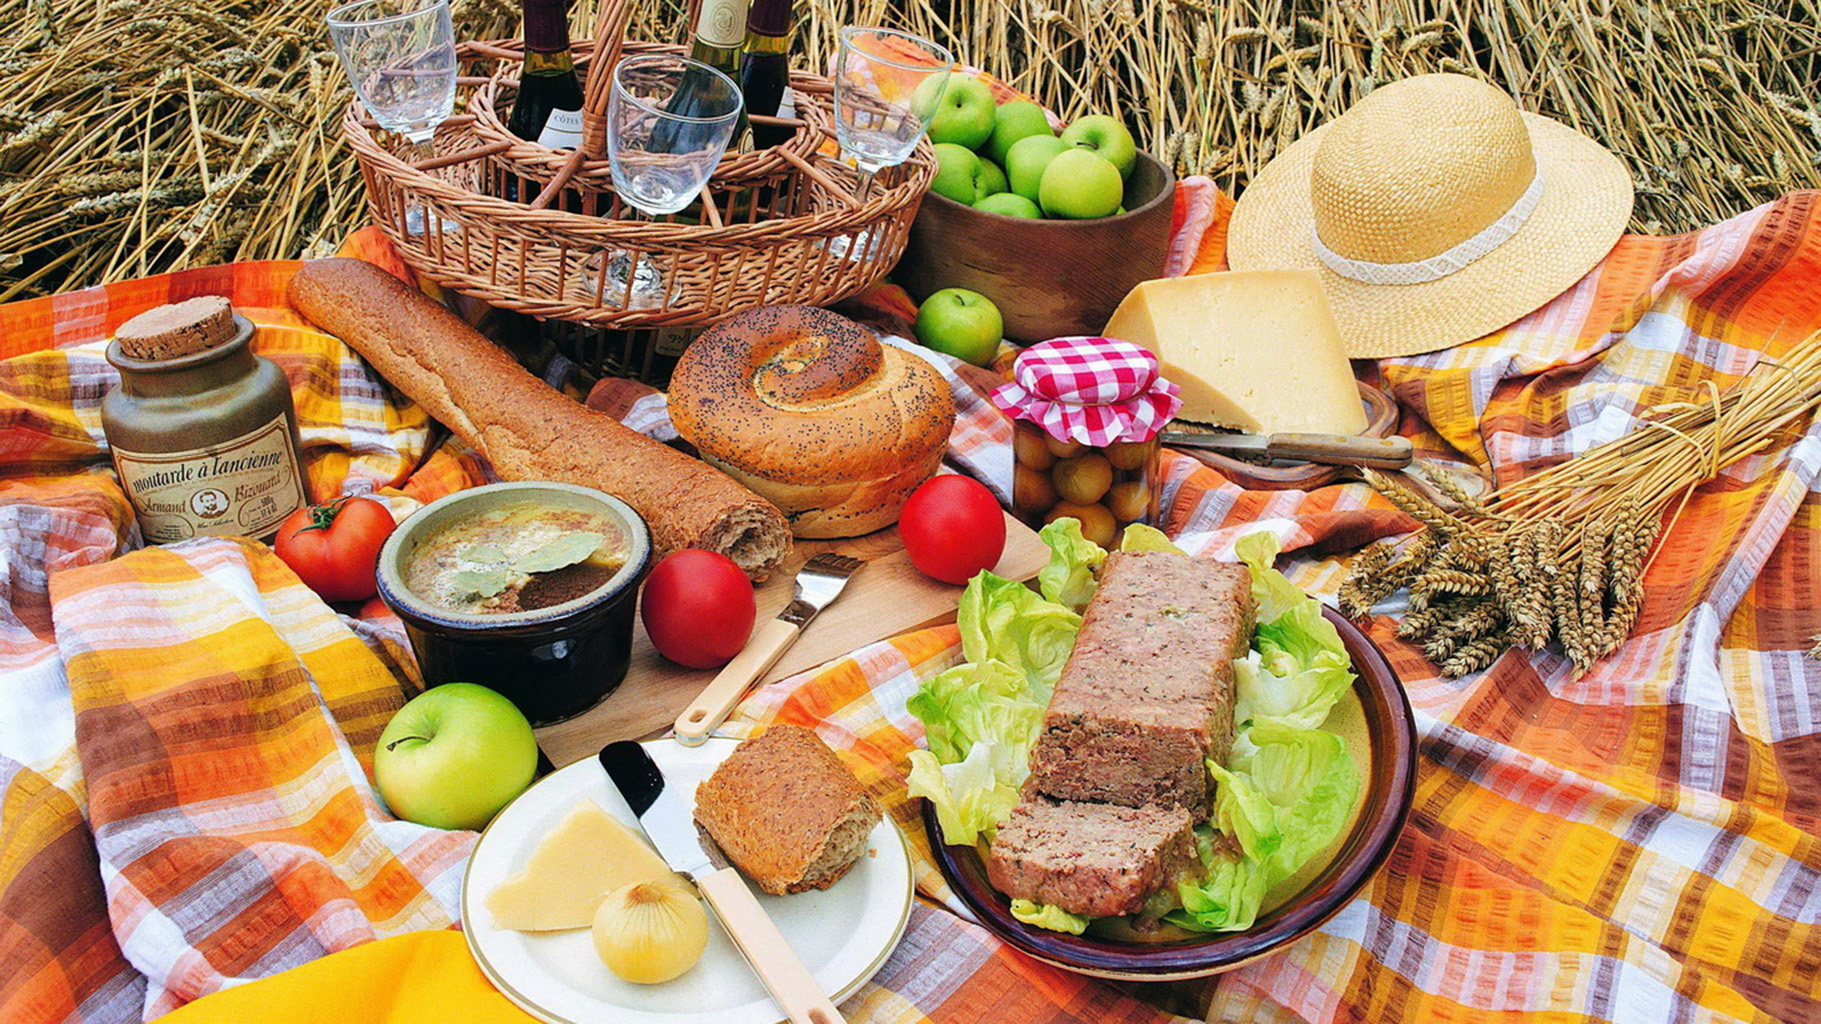 picnic food foods drink picnics summer park piknik asian pairings picknicken snack table tips checklist bring fun picknick cooking tables